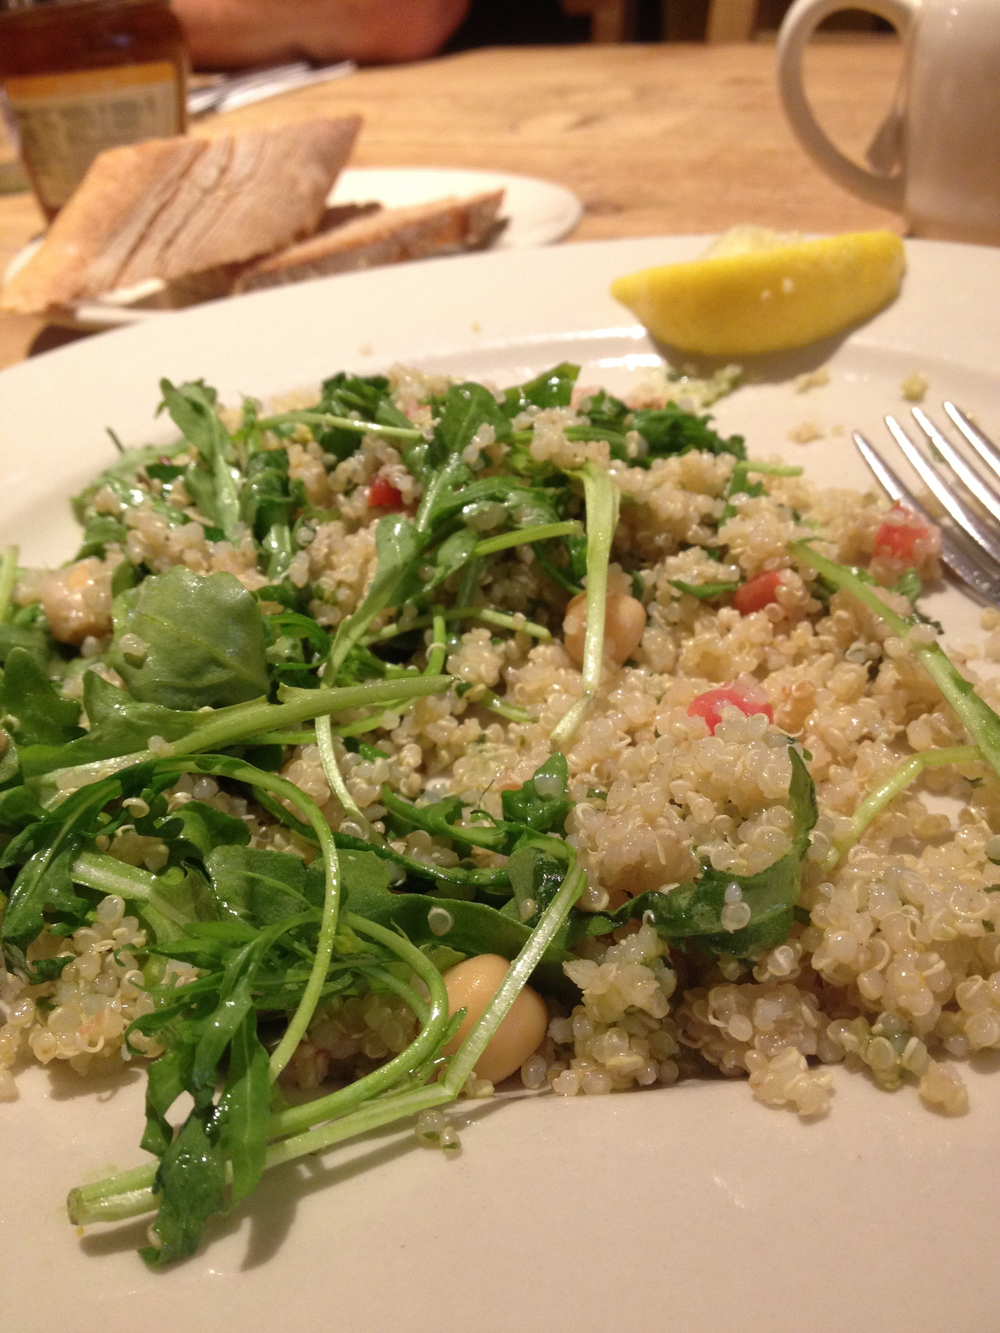 Meal Idea: Quinoa and arugula salad with chick peas and diced tomatoes. Dress this in some fresh squeezed lemon juice and a bit of olive oil. Add some s&p if you like.